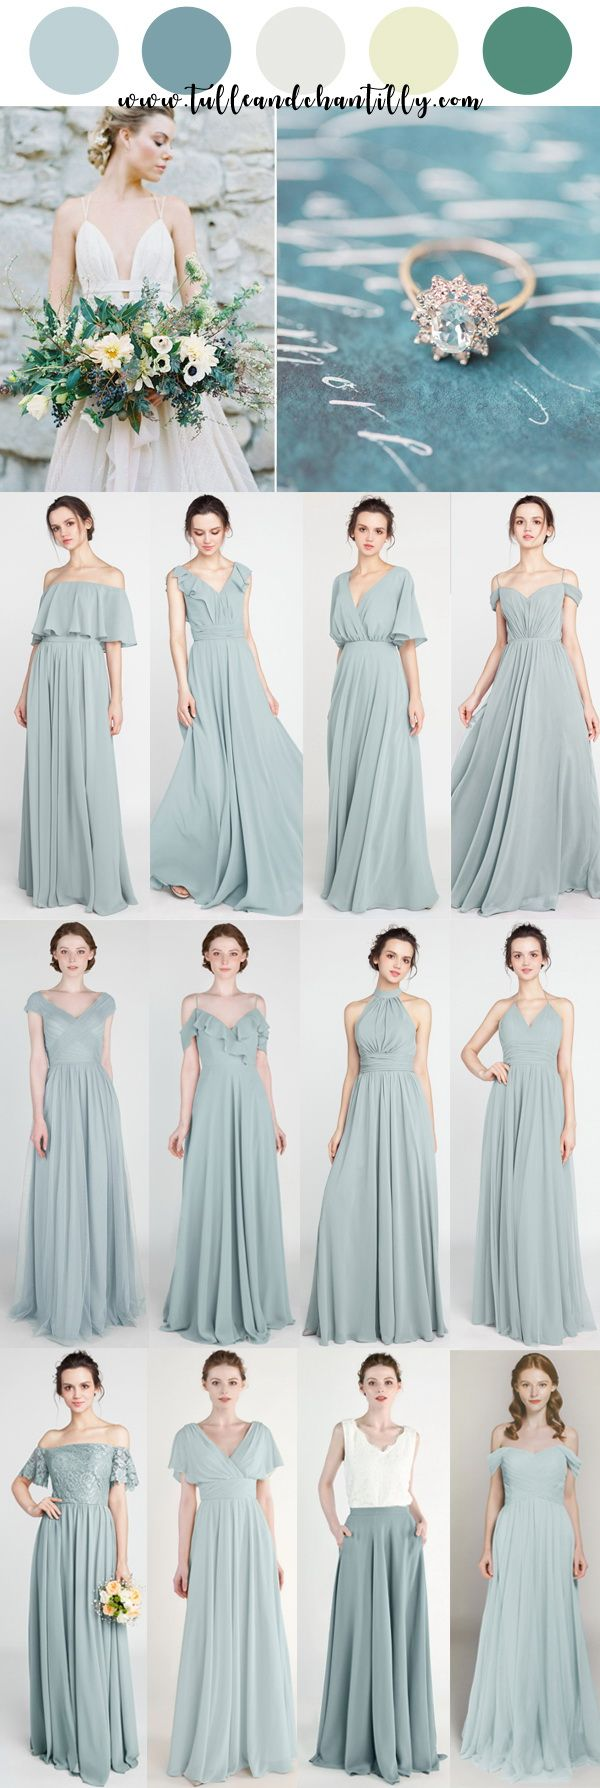 Long Short Bridesmaid Dresses 79 149 Size 0 30 And 50 Colors Silver Bridesmaid Dresses Sage Bridesmaid Dresses Rustic Bridesmaid Dresses